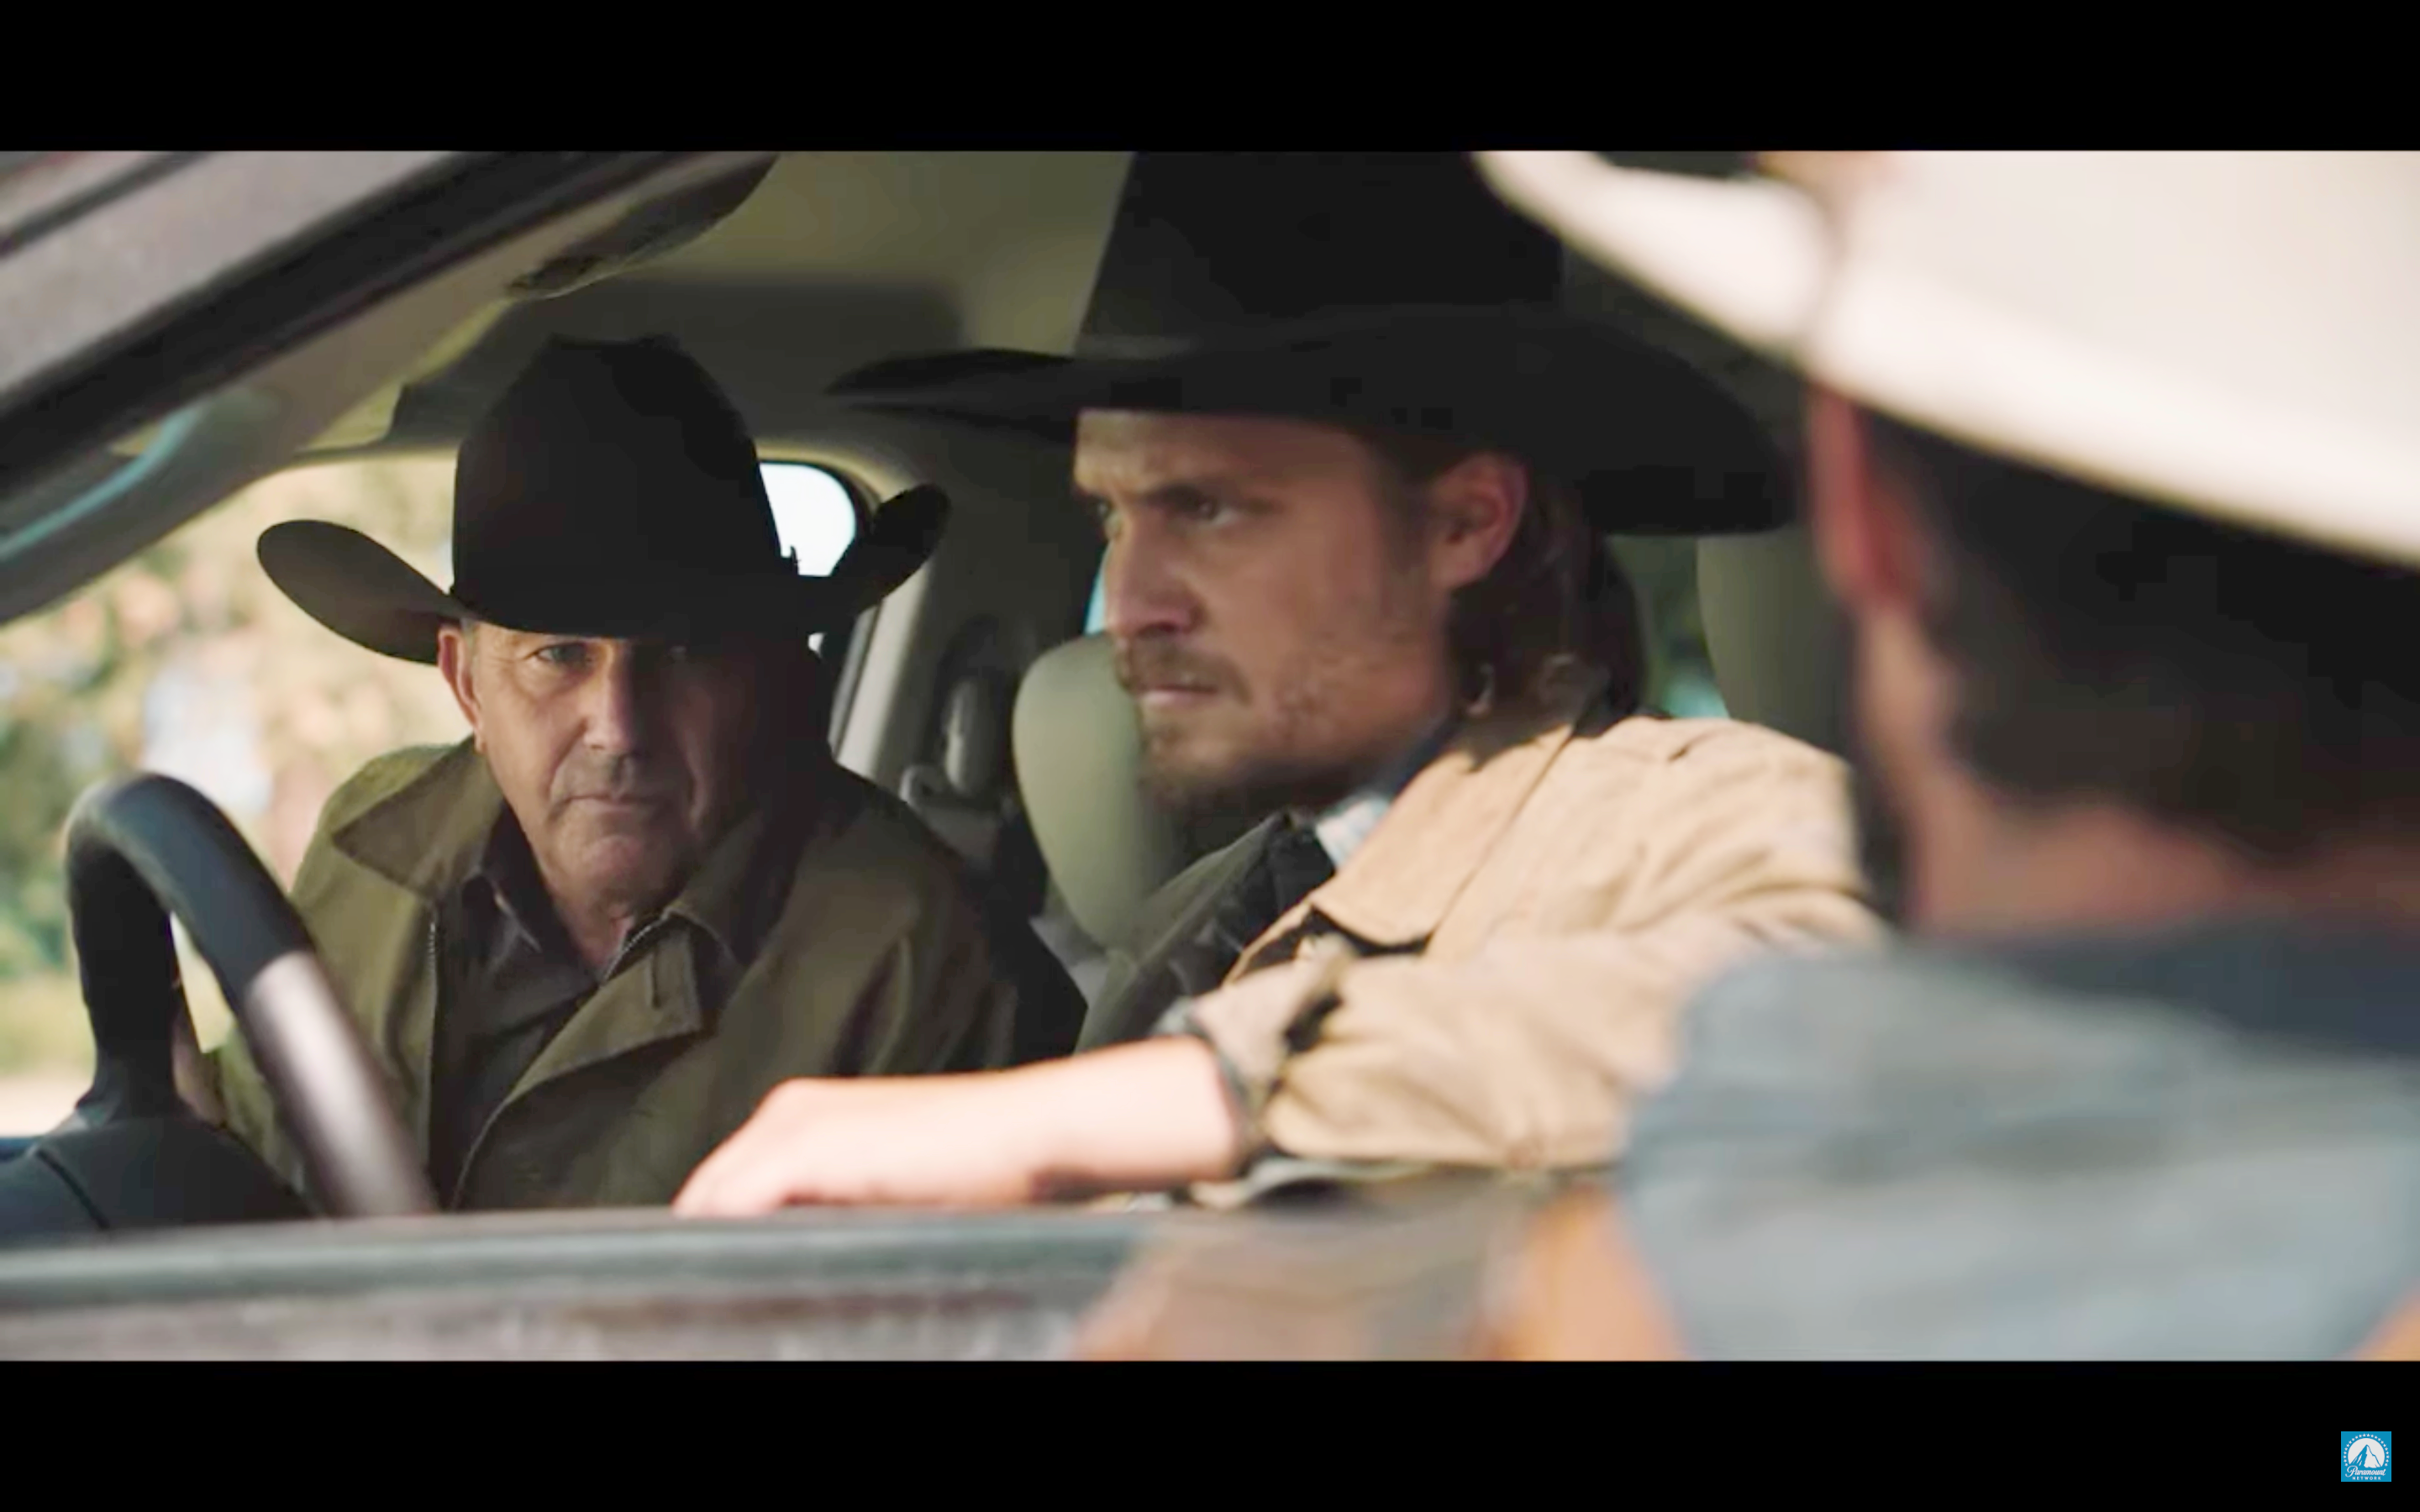 Yellowstone Season 2 Episode 2 Clip Shows Walker Trying to Quit